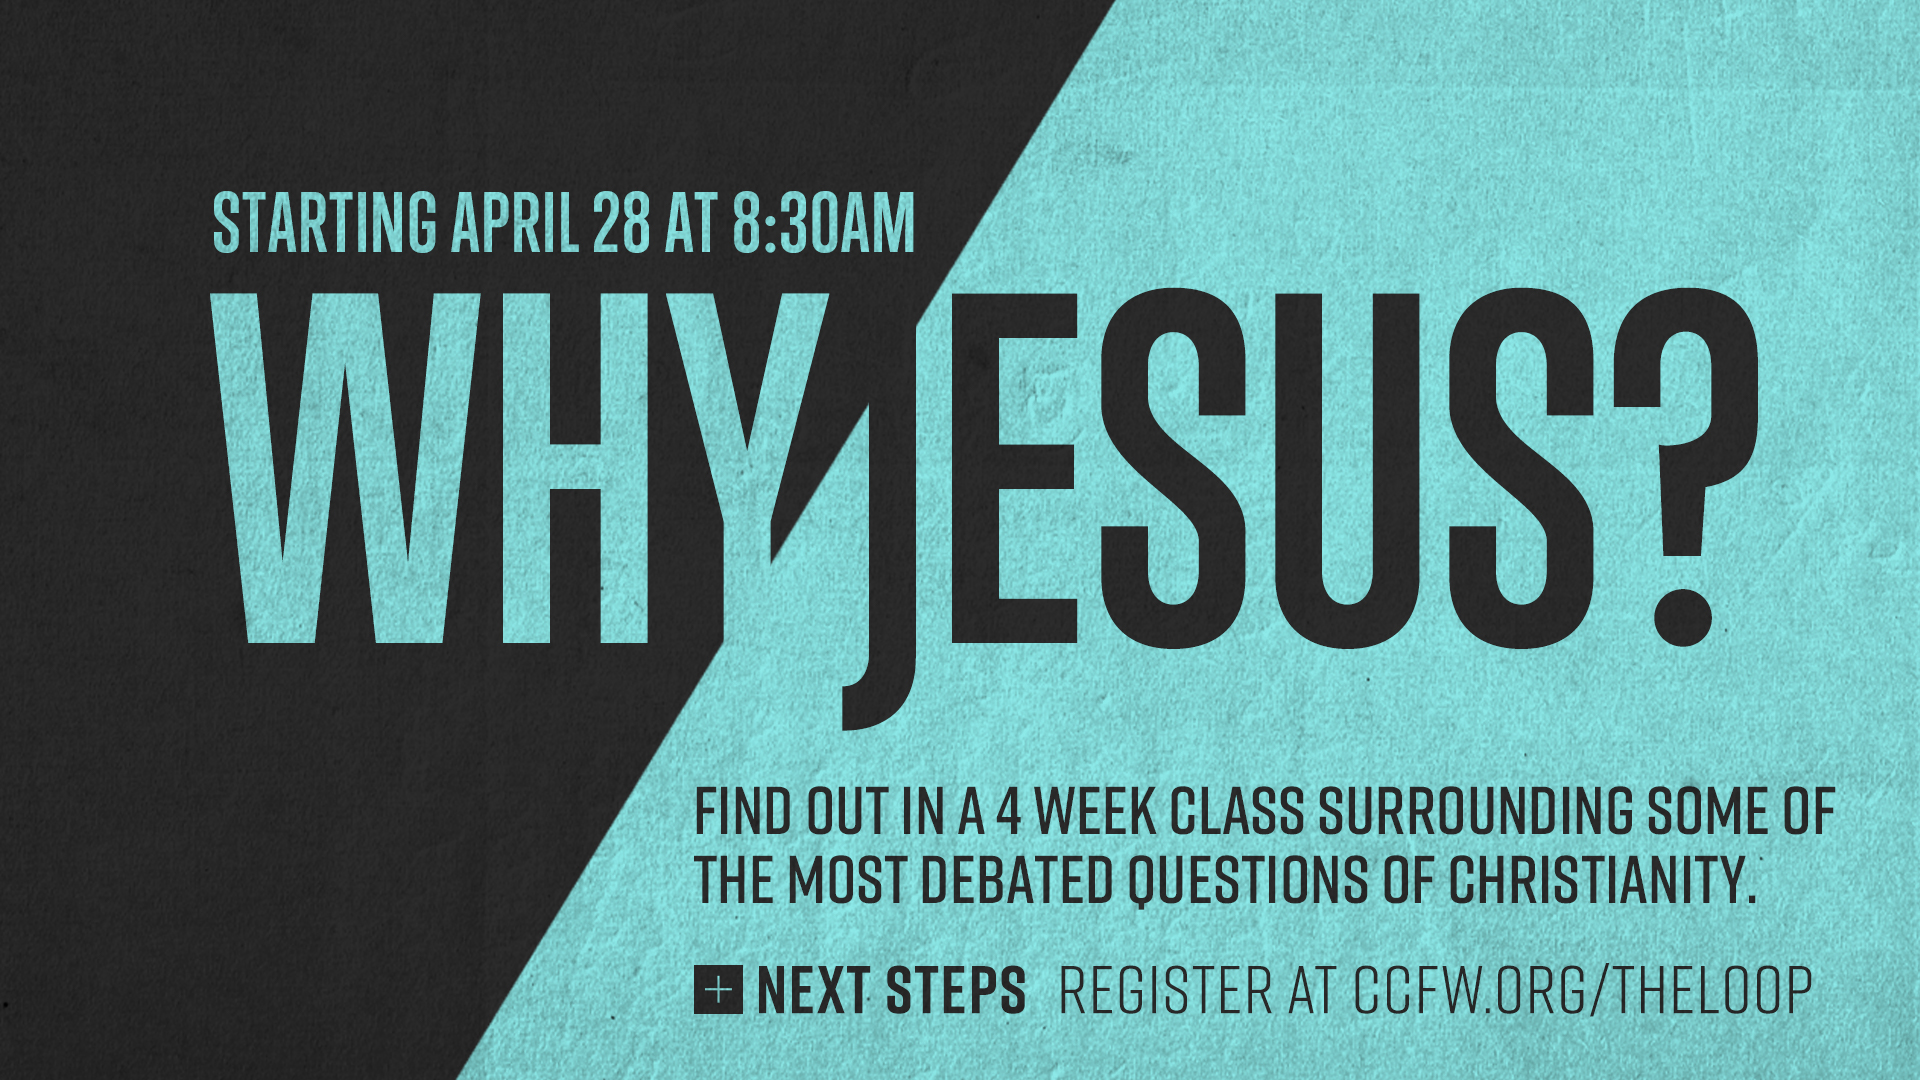 Why Jesus versus any other religion? Find out in a  multi-week class  surrounding some of the most debated questions of Christianity.